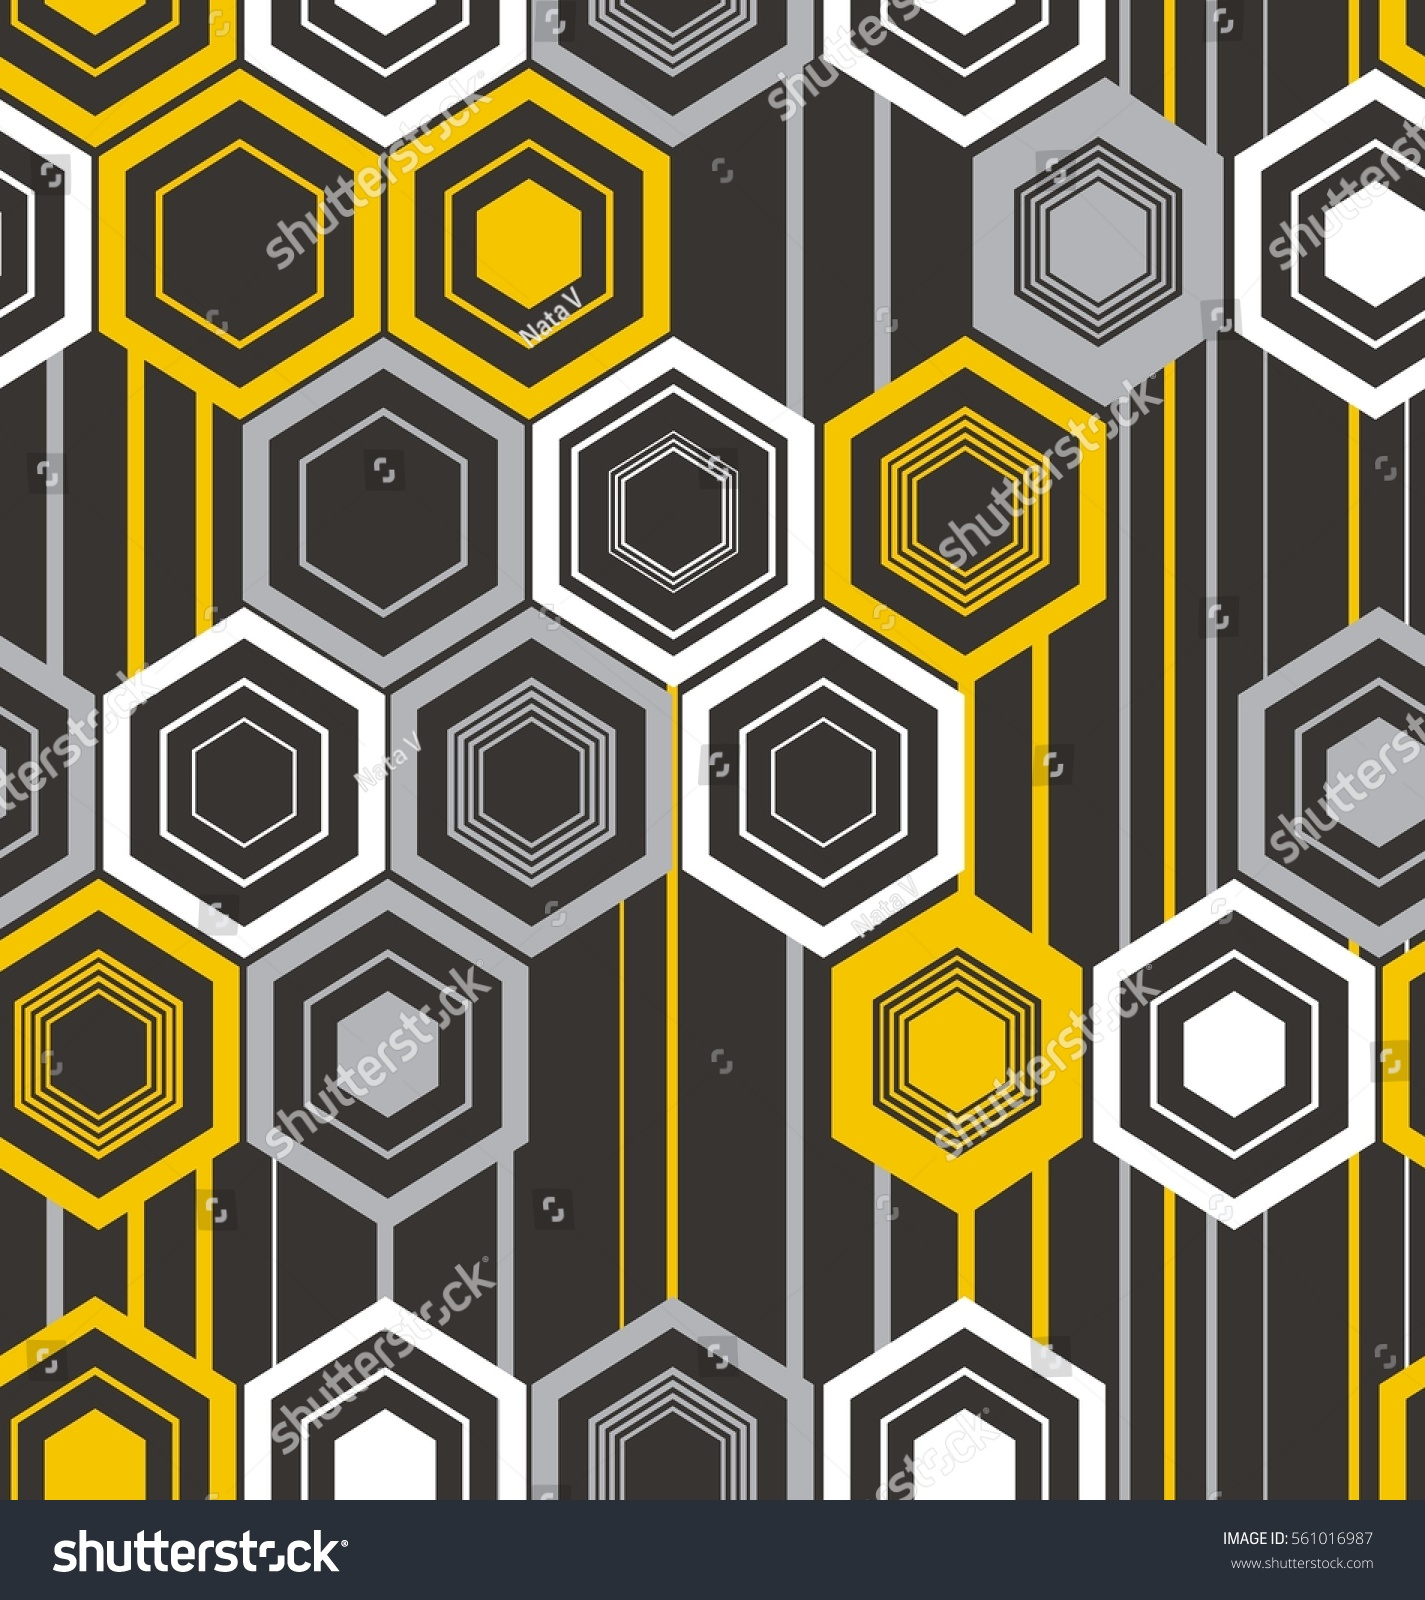 Abstract Texture Of Hexagons In Black, Yellow, White And Gray